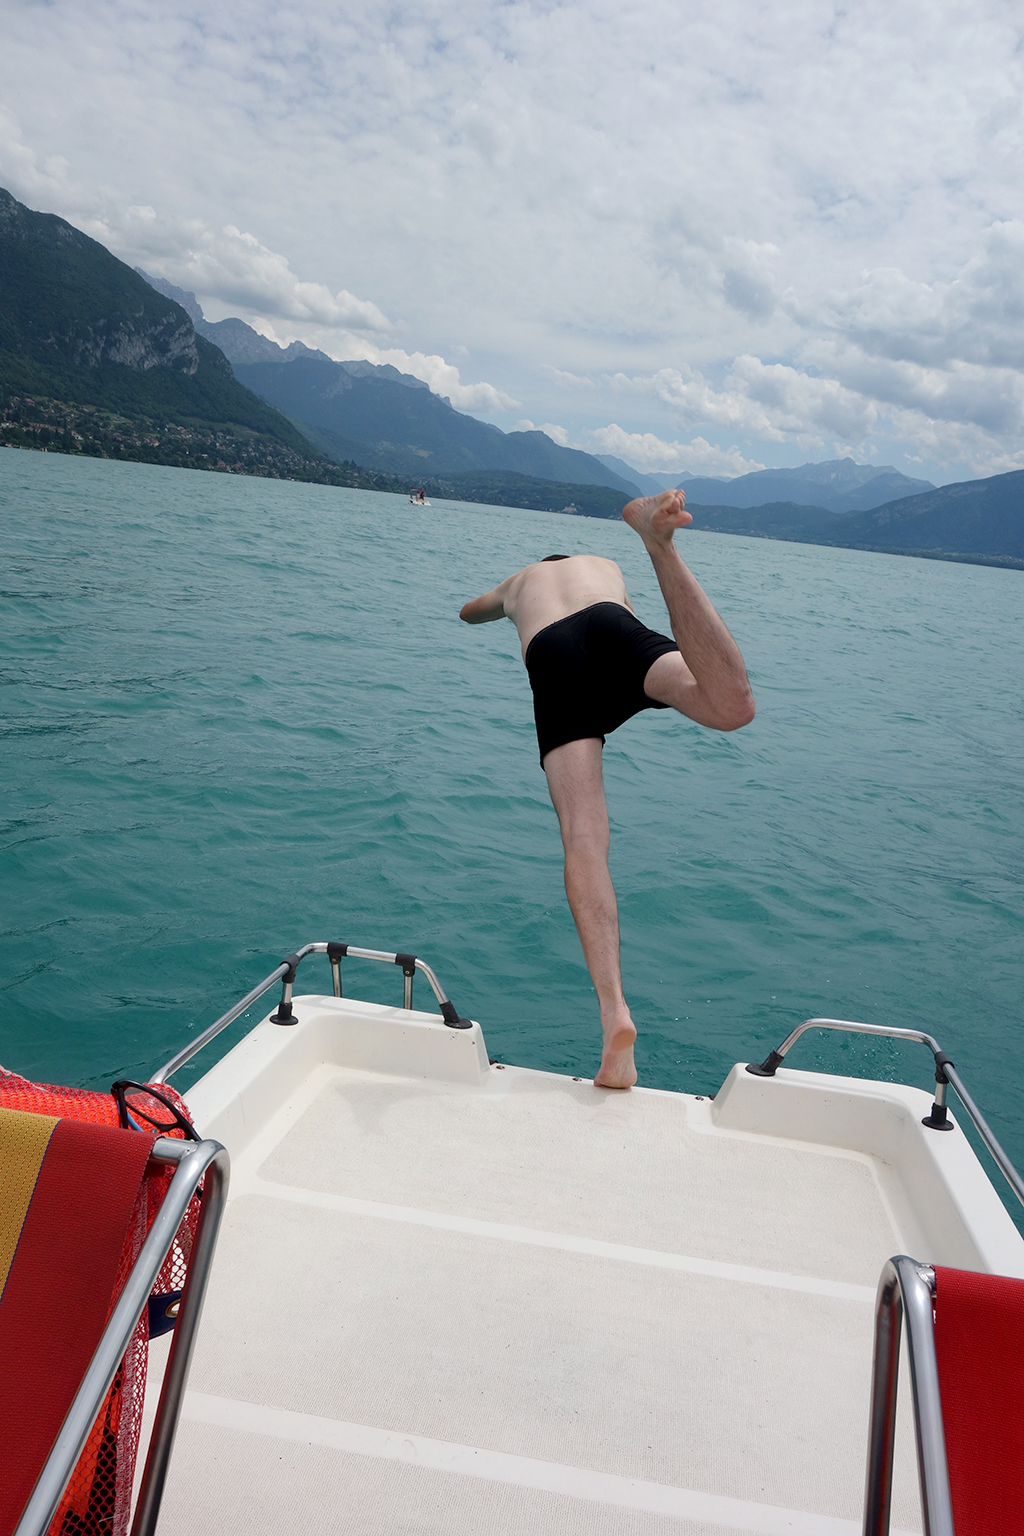 Rob jumps in Lake Annecy